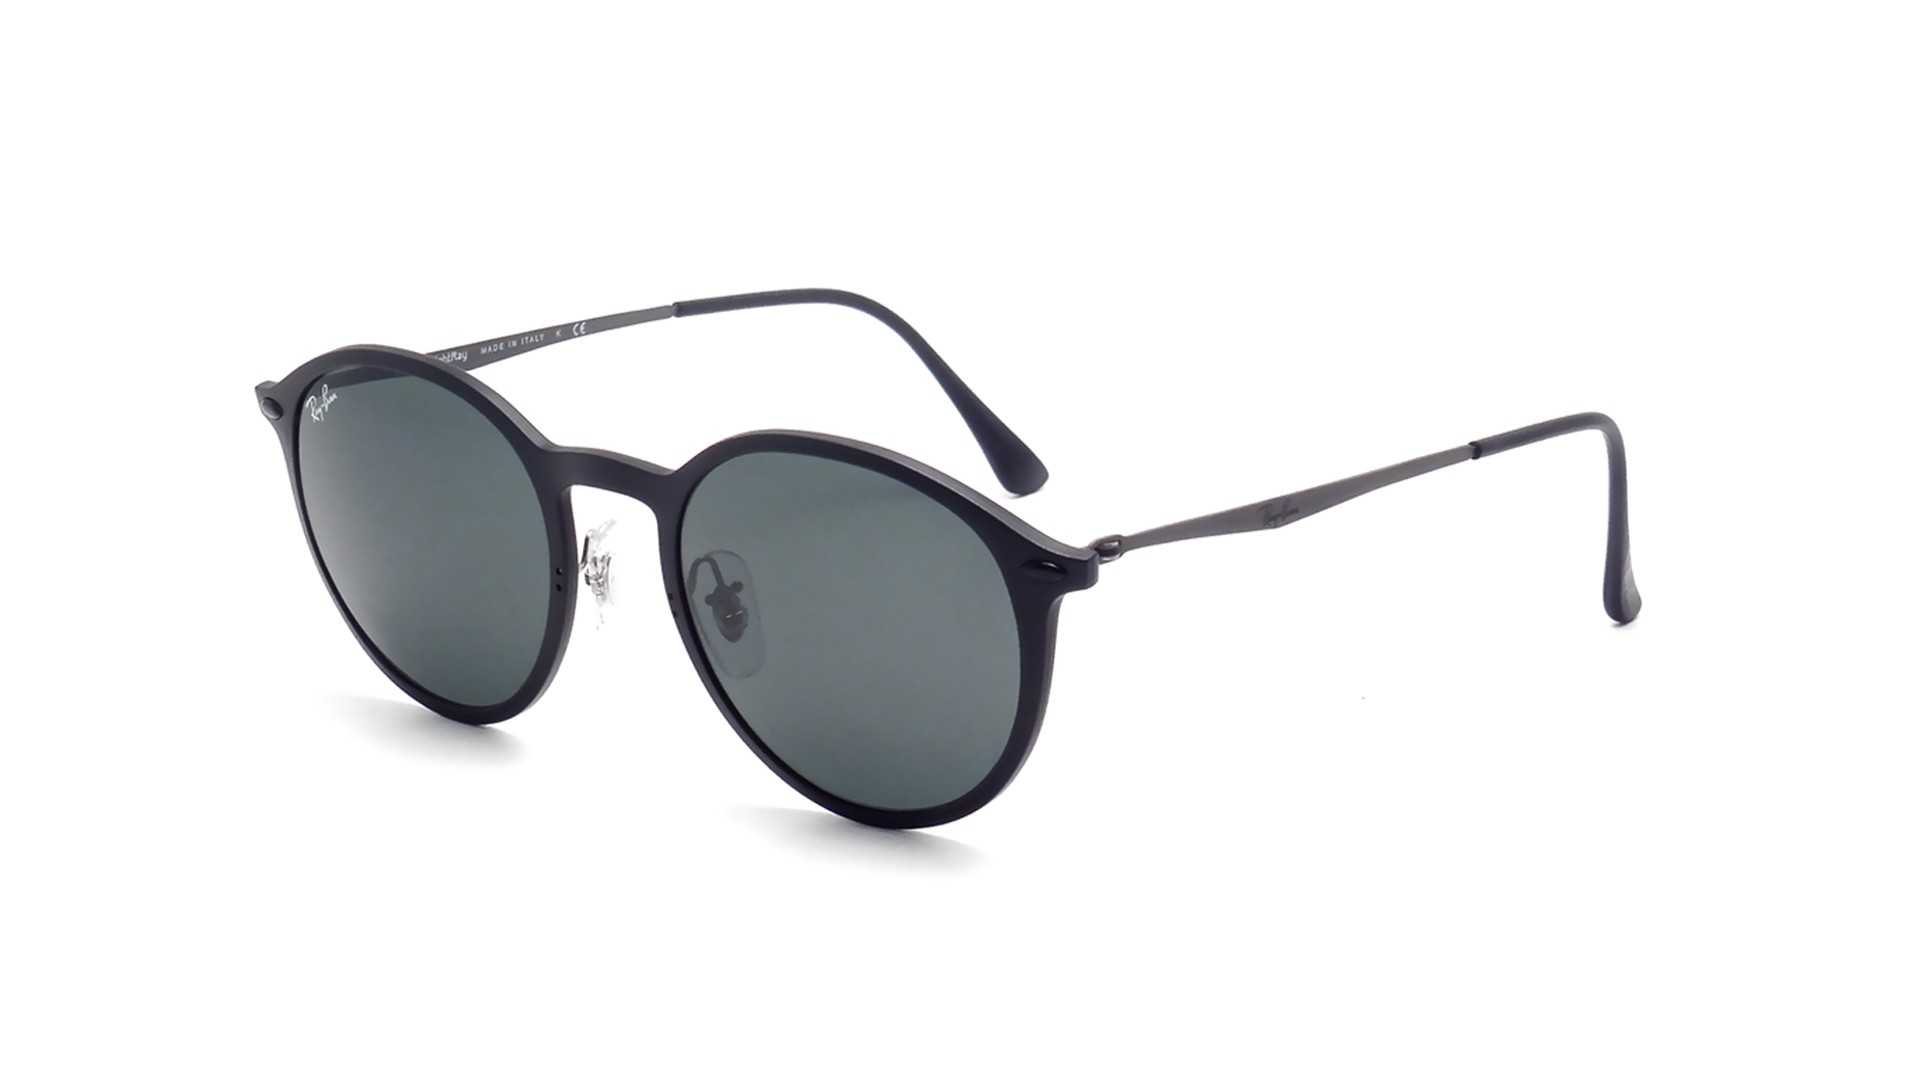 ray ban Ray-ban rainbow mirrored aviator sunglasses at shopbopcom - fastest free shipping worldwide buy ray-ban online.